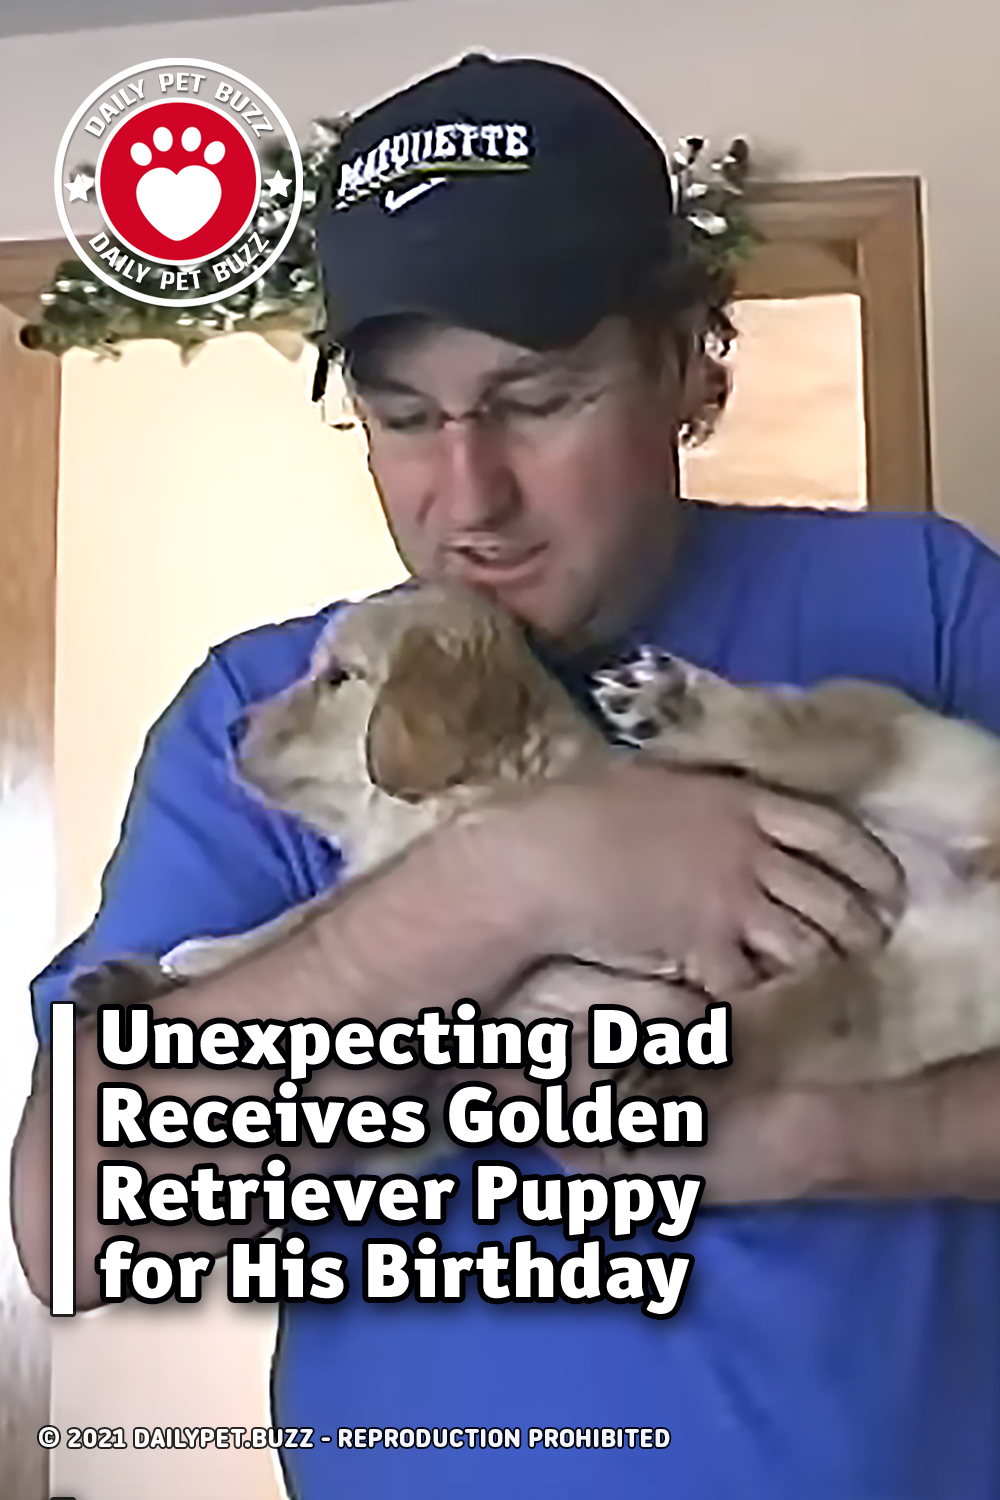 Unexpecting Dad Receives Golden Retriever Puppy for His Birthday